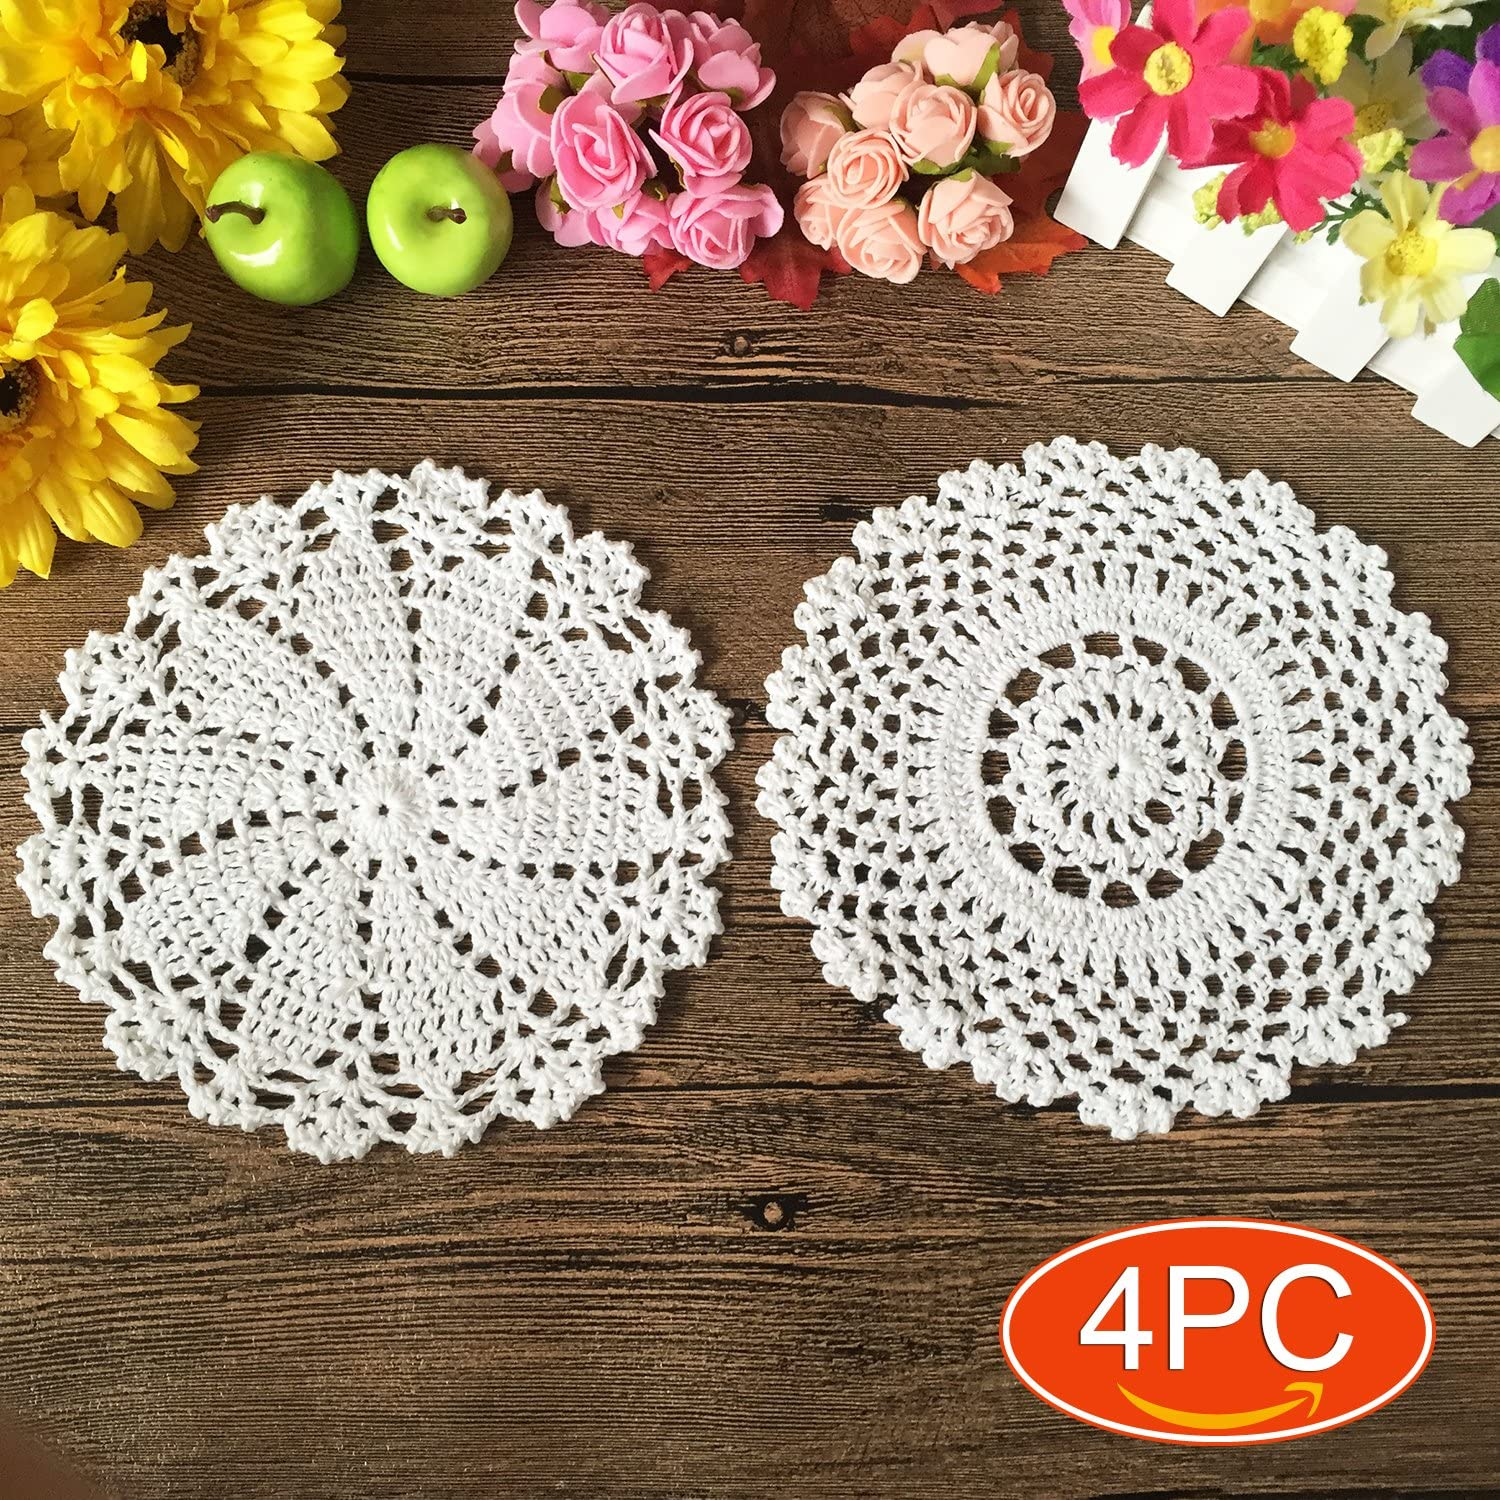 Elesa Miracle Handmade Round Crochet Cotton Lace Table Placemats Doilies Value Pack, Mix, Beige (4pc-7 Inch White)